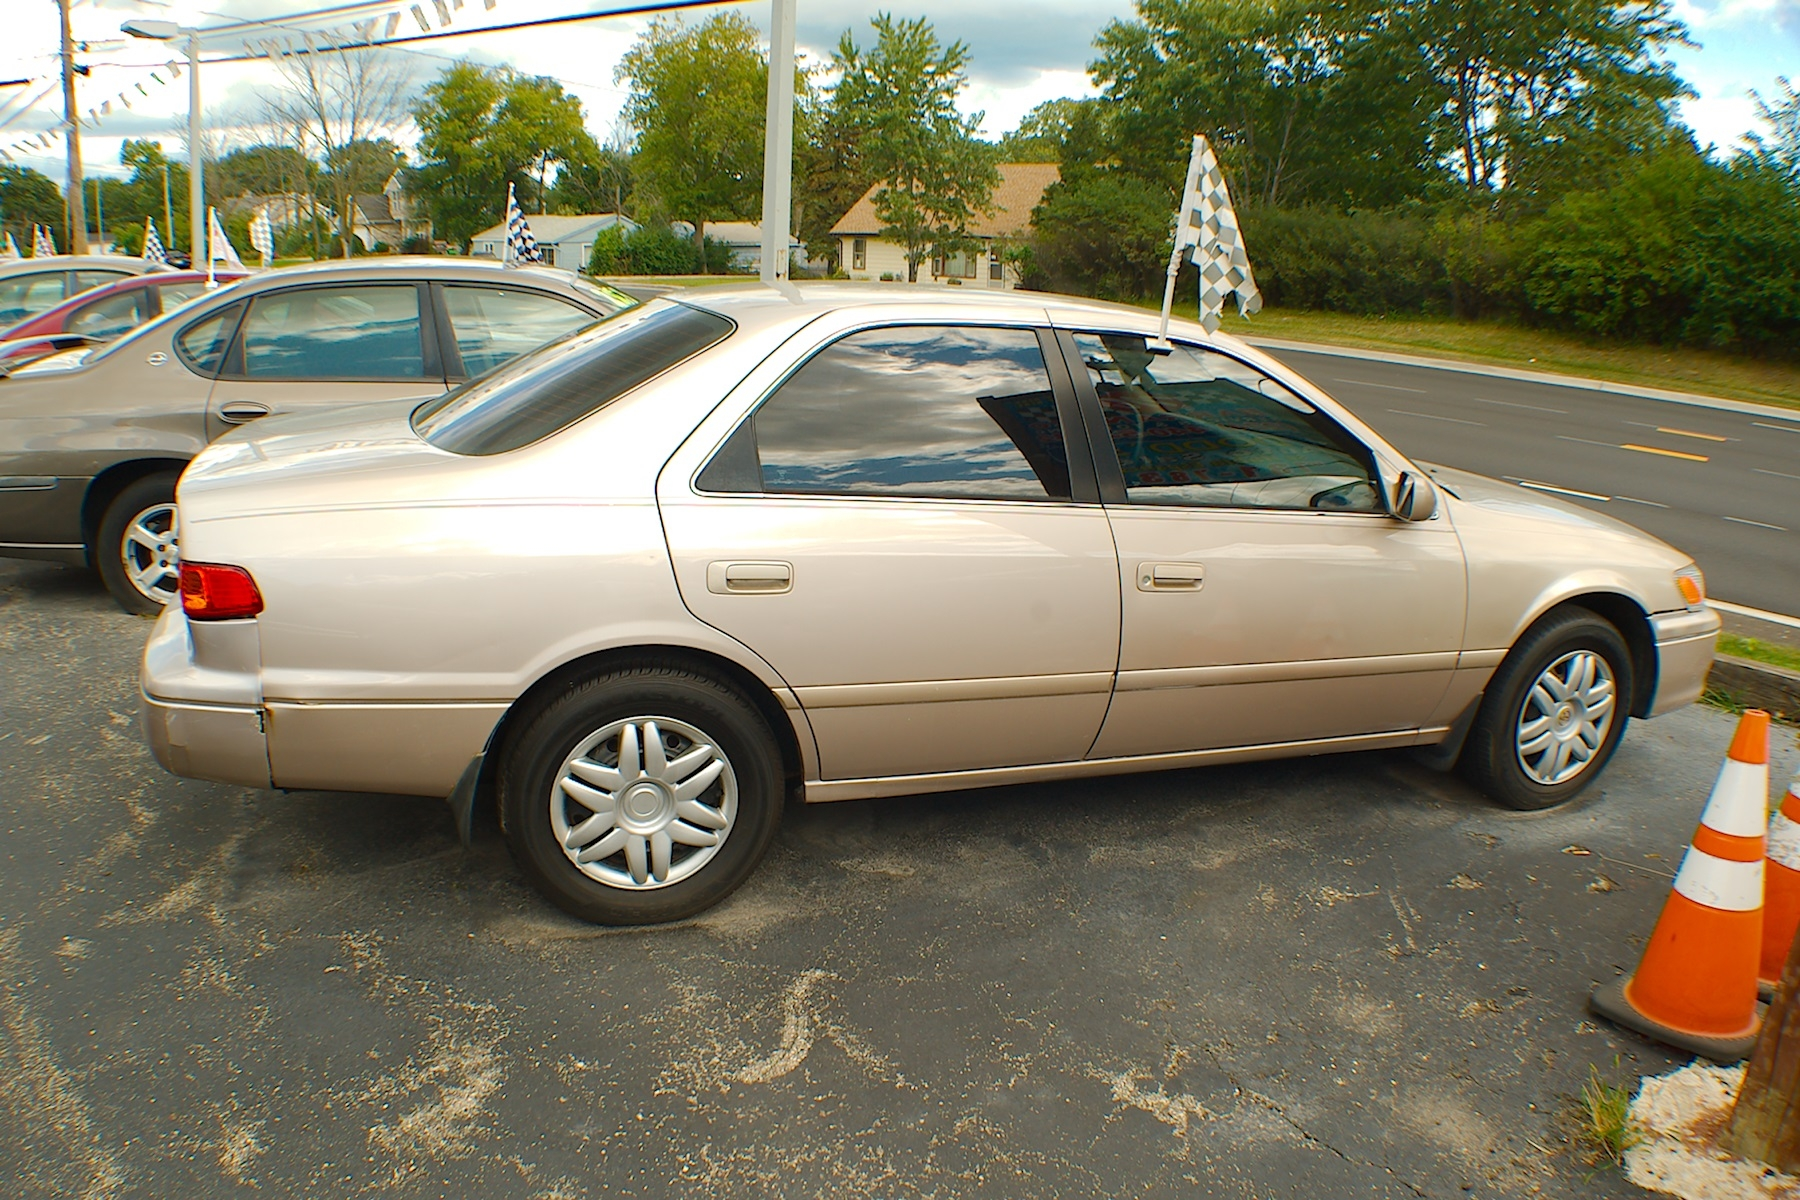 2001 Toyota Camry LE Sand Sedan Used Car Sale Bannockburn Barrington Beach Park